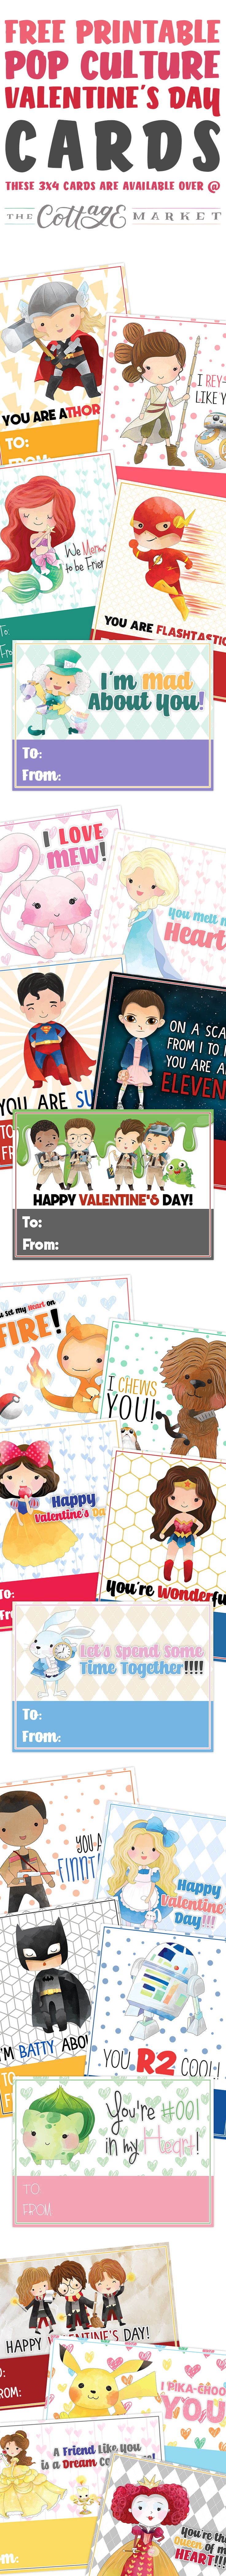 Come and get your Free Printable Pop Culture Valentine's Day Cards to hand out to your friends and of course they are picture perfect for the Kids to hand out to their friends...home and at school. Something for everyone! ENJOY!